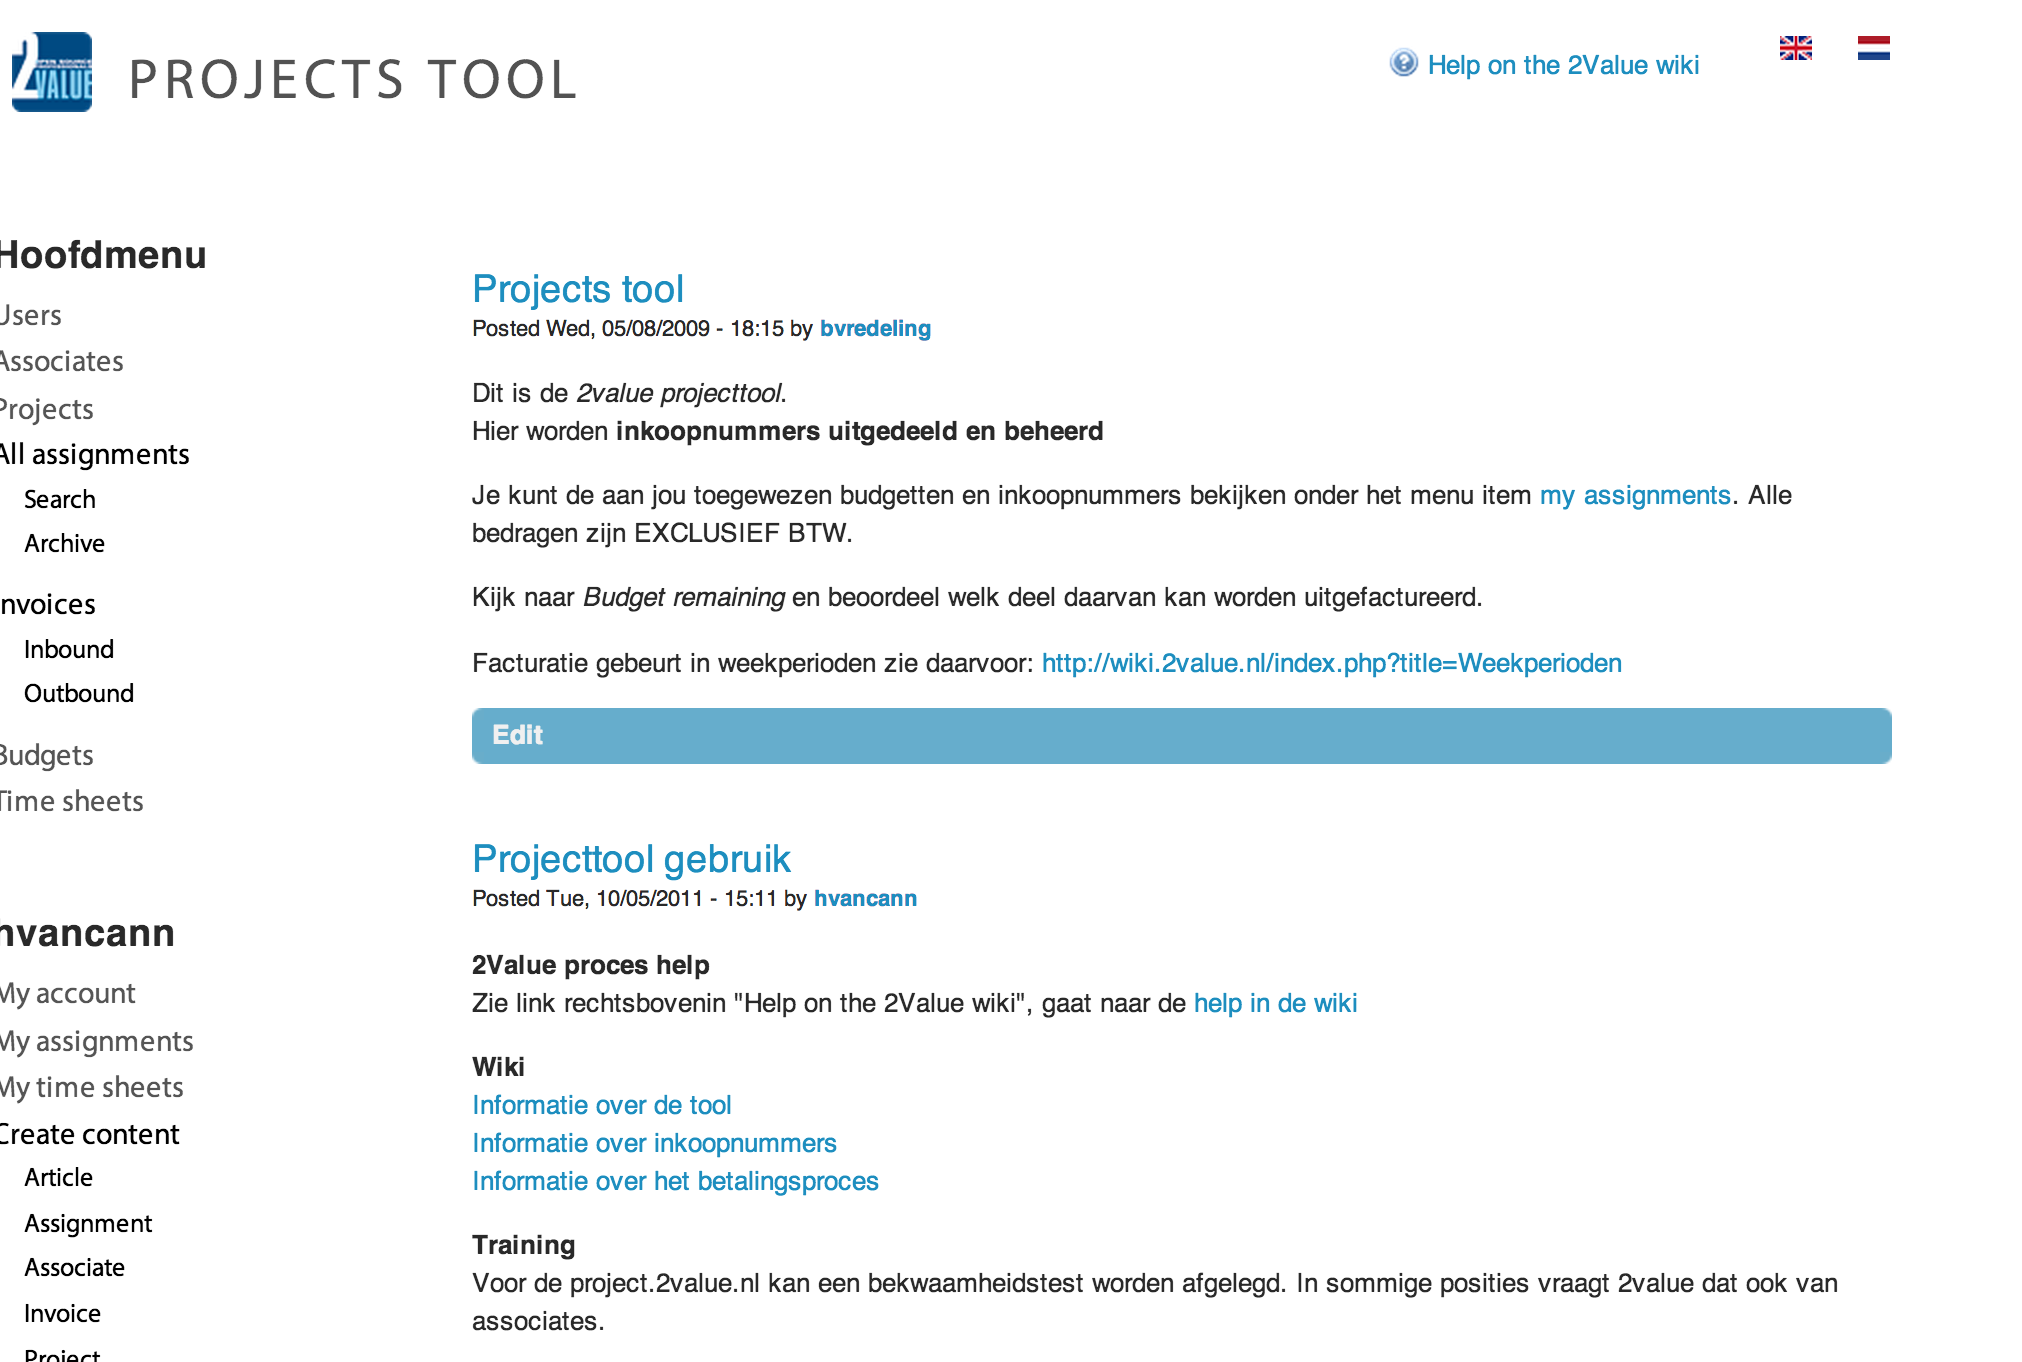 File:Login projecttool 2value png - 2Value Wiki